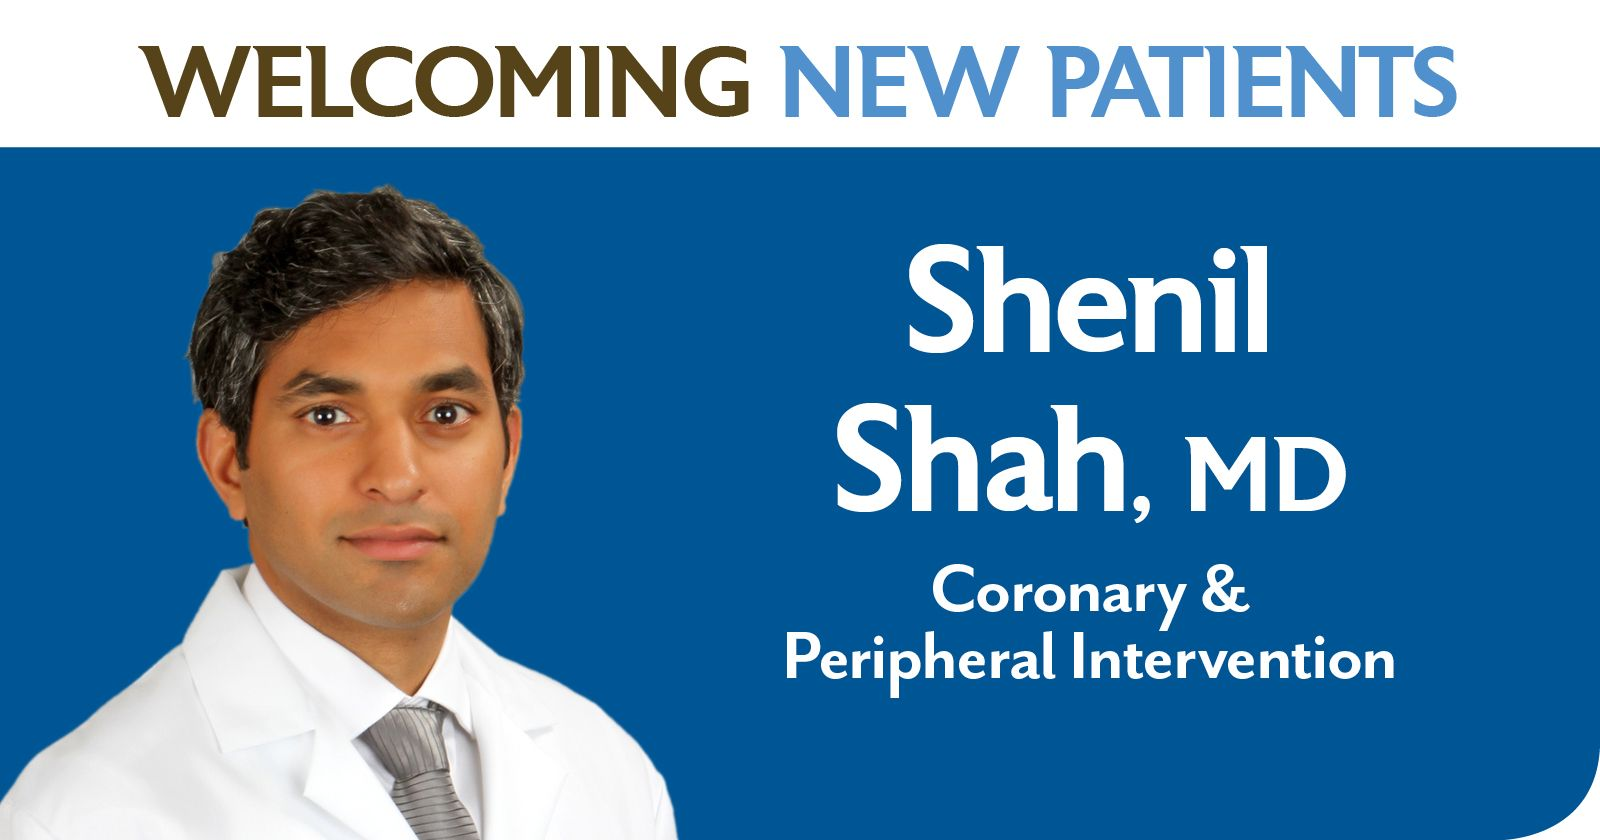 Shenil Shah, MD, has joined Franciscan Physician Network